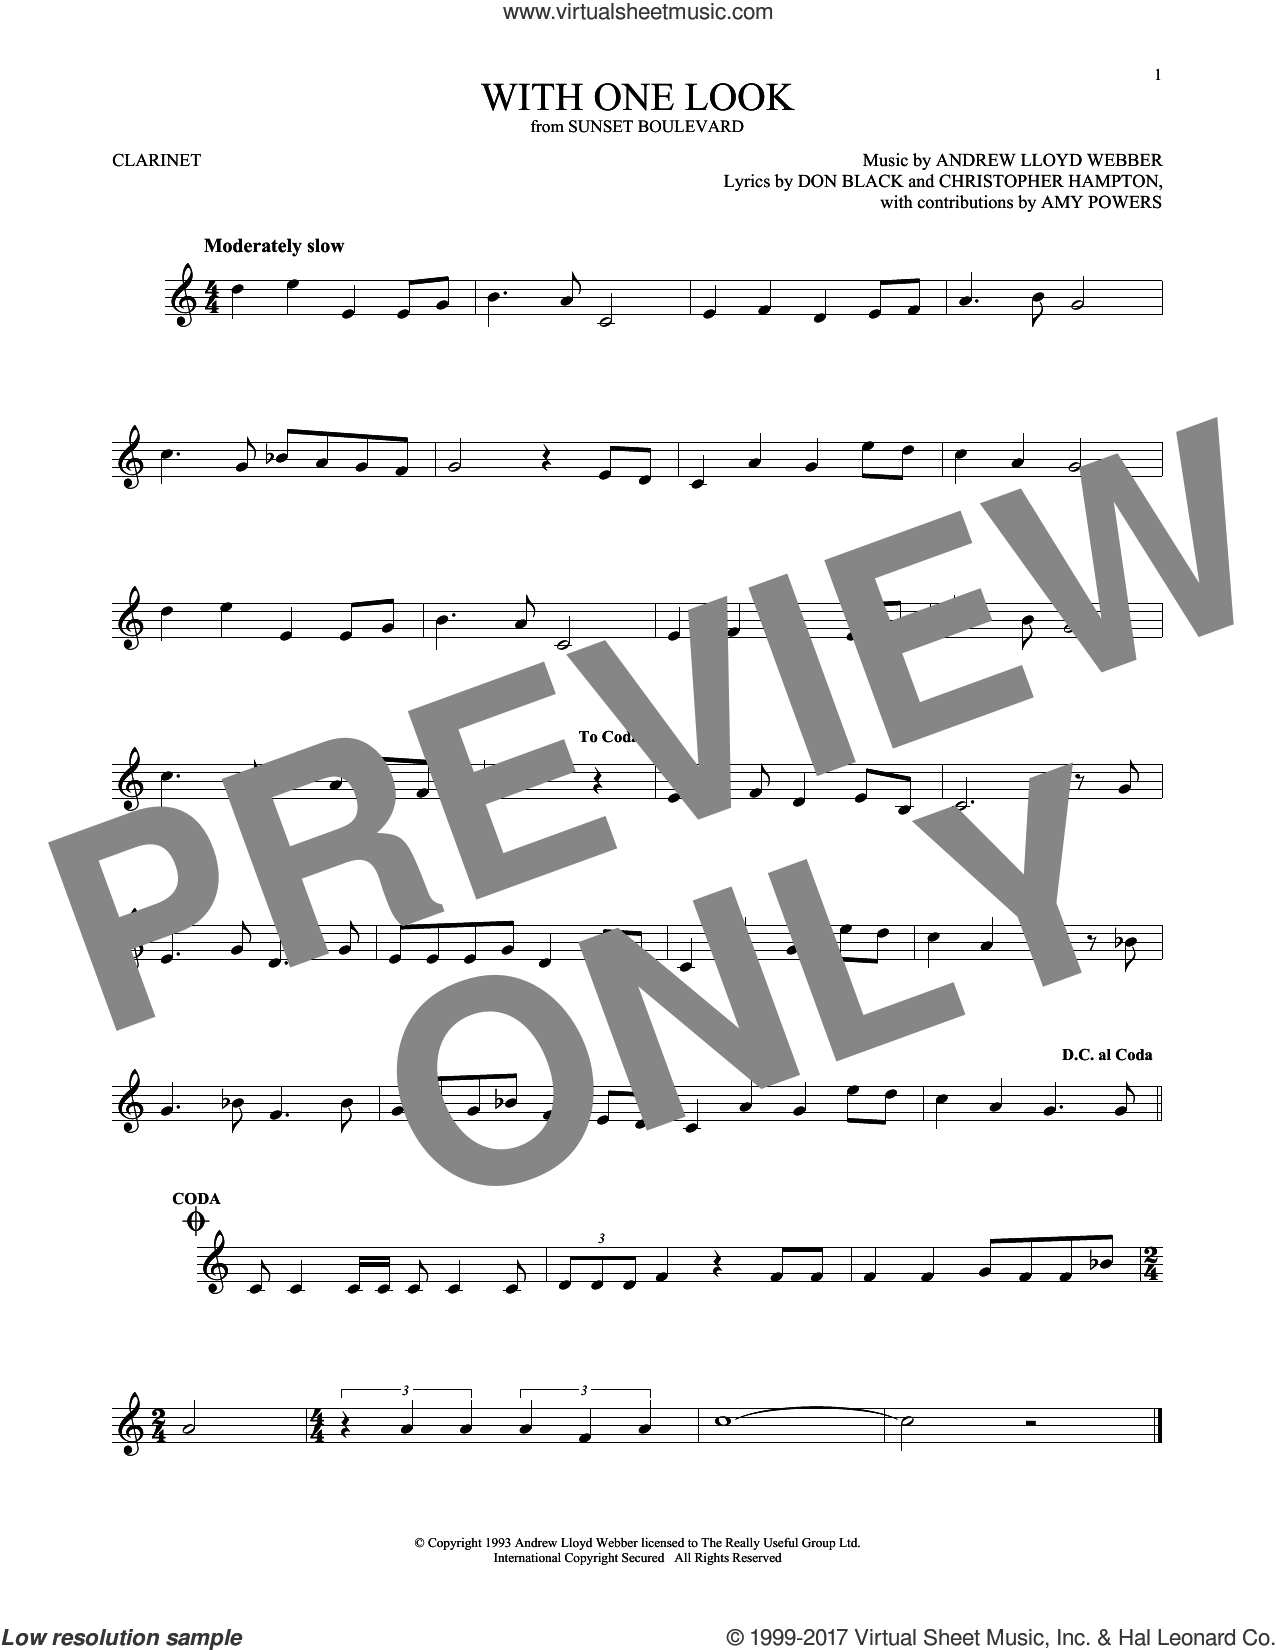 With One Look sheet music for clarinet solo by Andrew Lloyd Webber, Christopher Hampton and Don Black, intermediate skill level